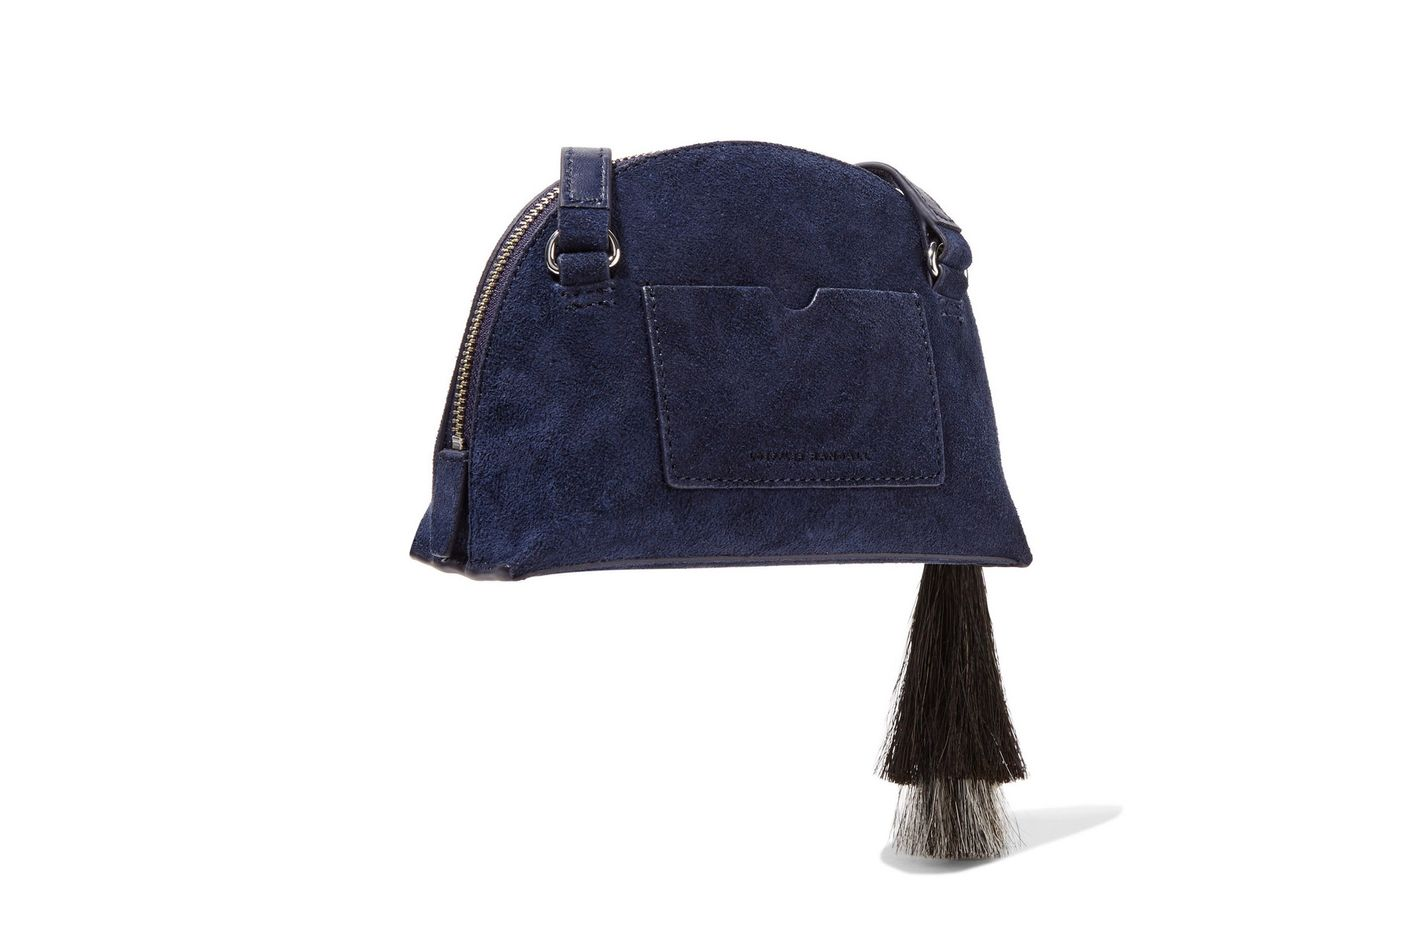 Loeffler Randall Tasseled Shoulder Bag